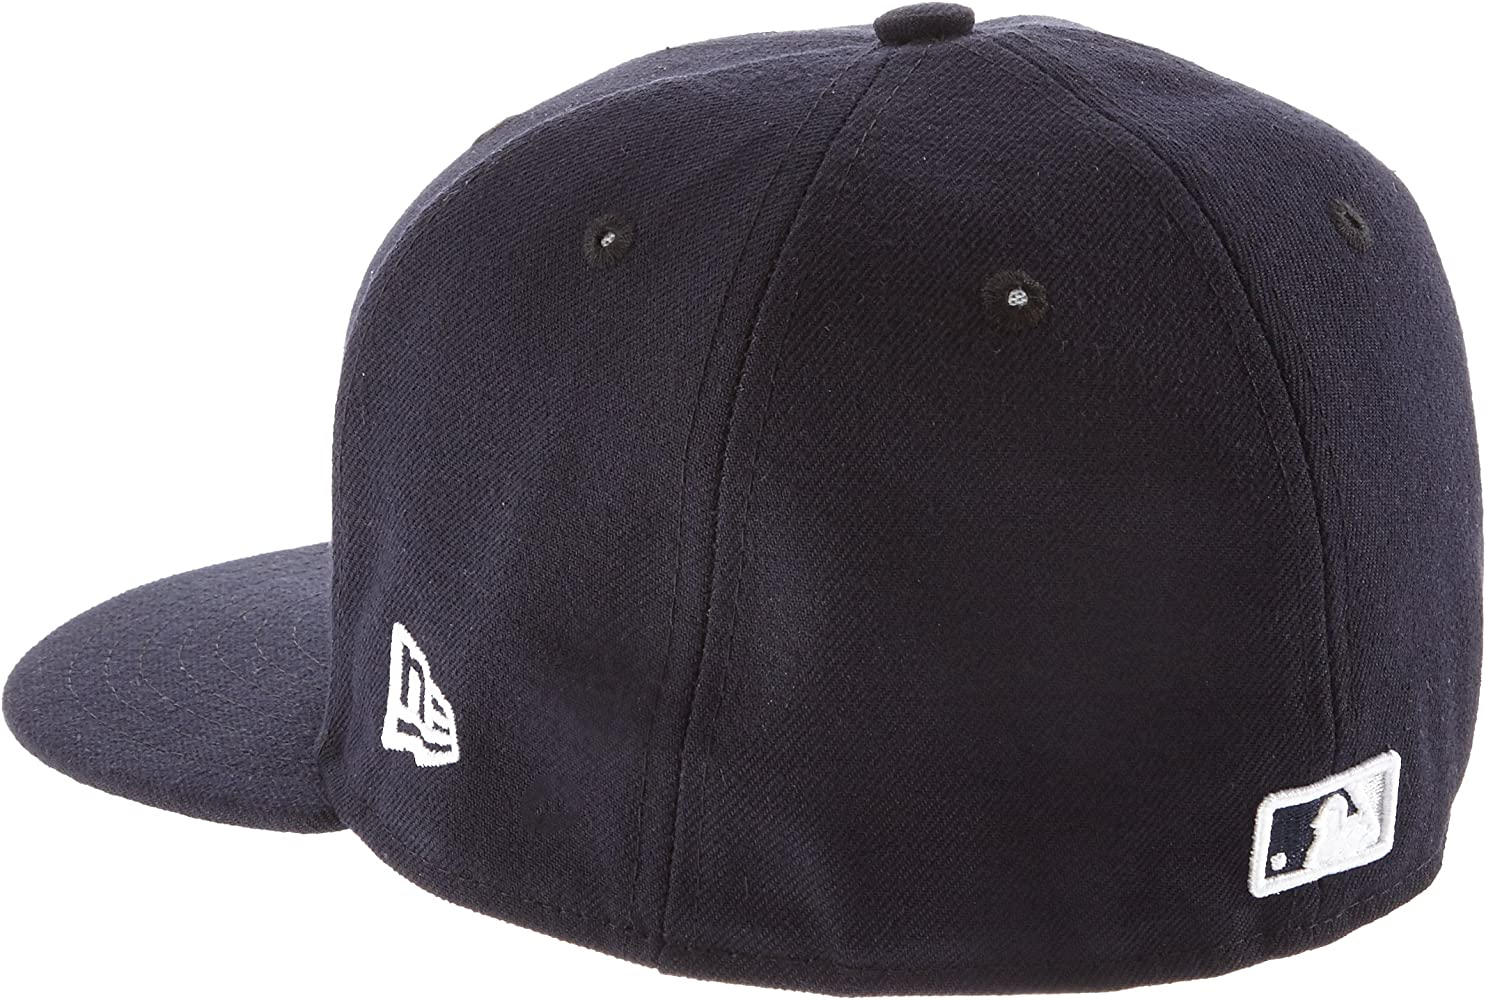 New Era 5950 Tsf York Yankees Gm Gorra, Hombre, Multicolor ...